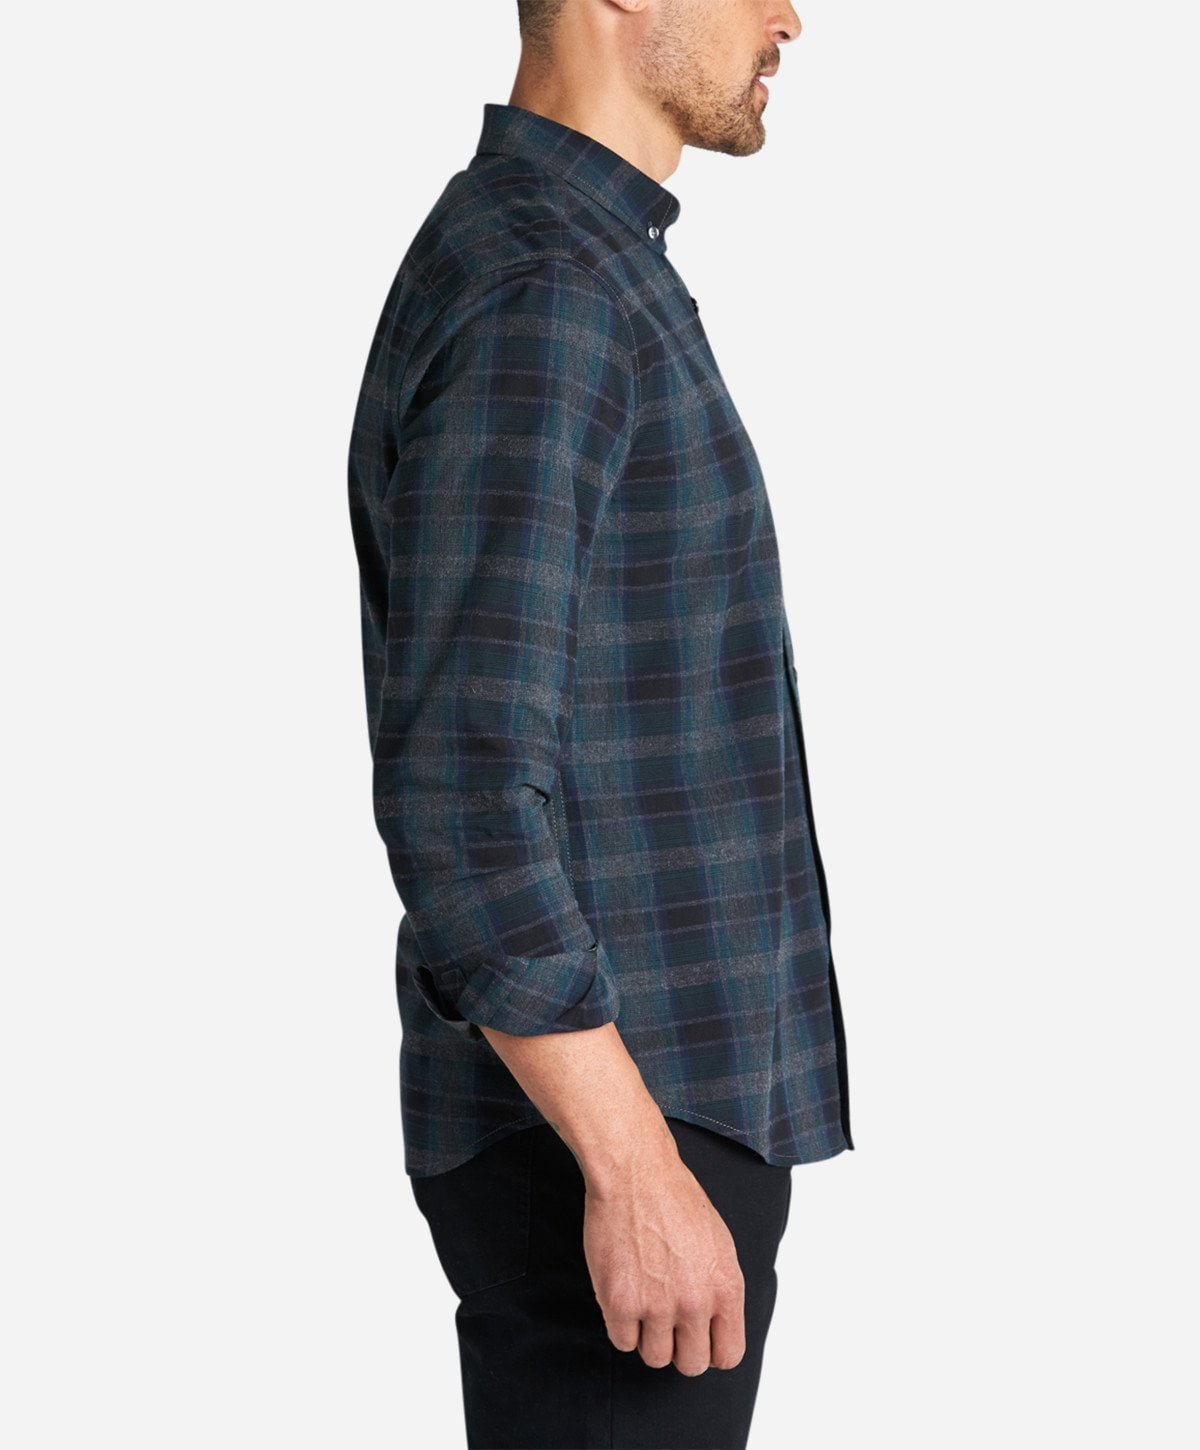 5 O'clock Shadow Shirt - Navy